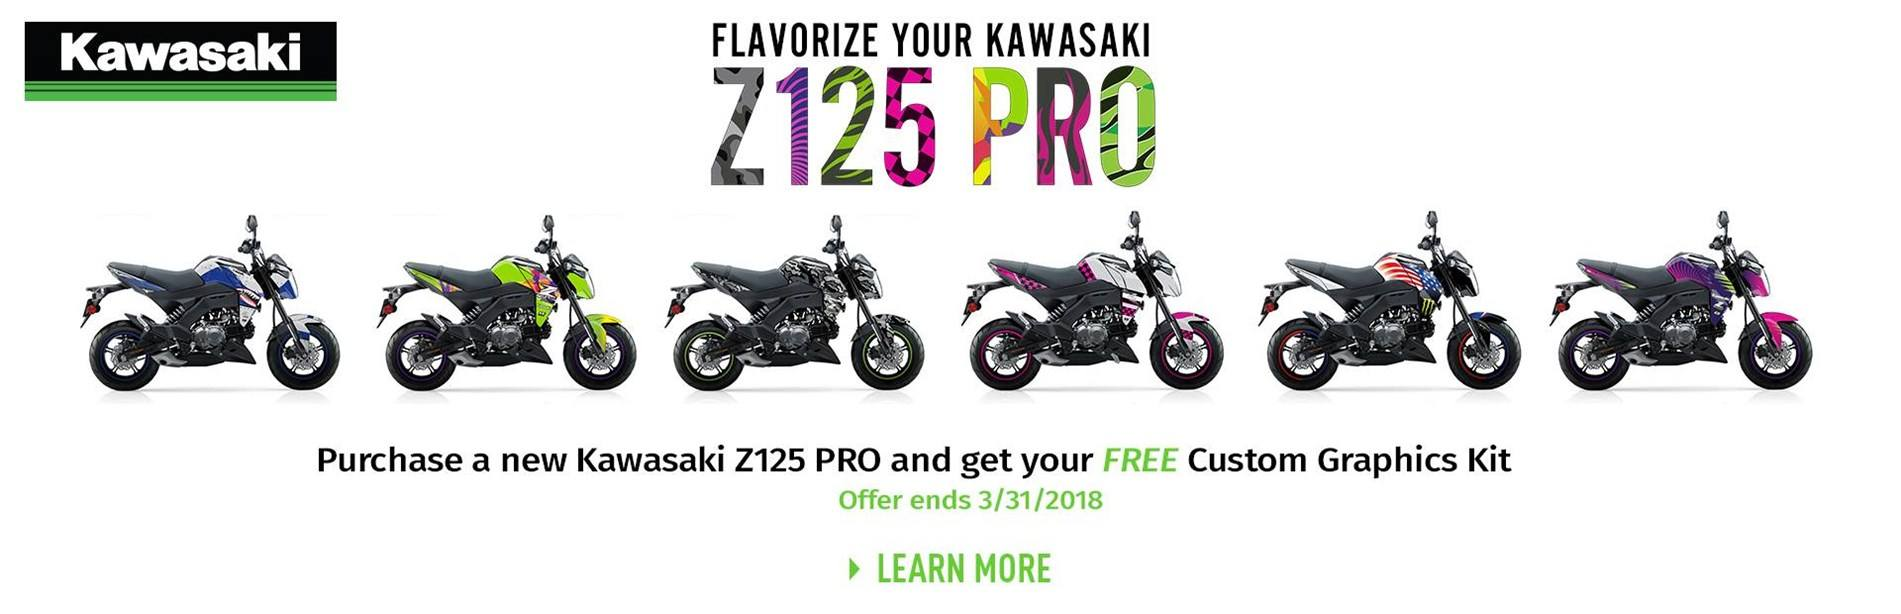 Kawasaki - Z125 Pro GET A FREE CUSTOM GRAPHICS KIT